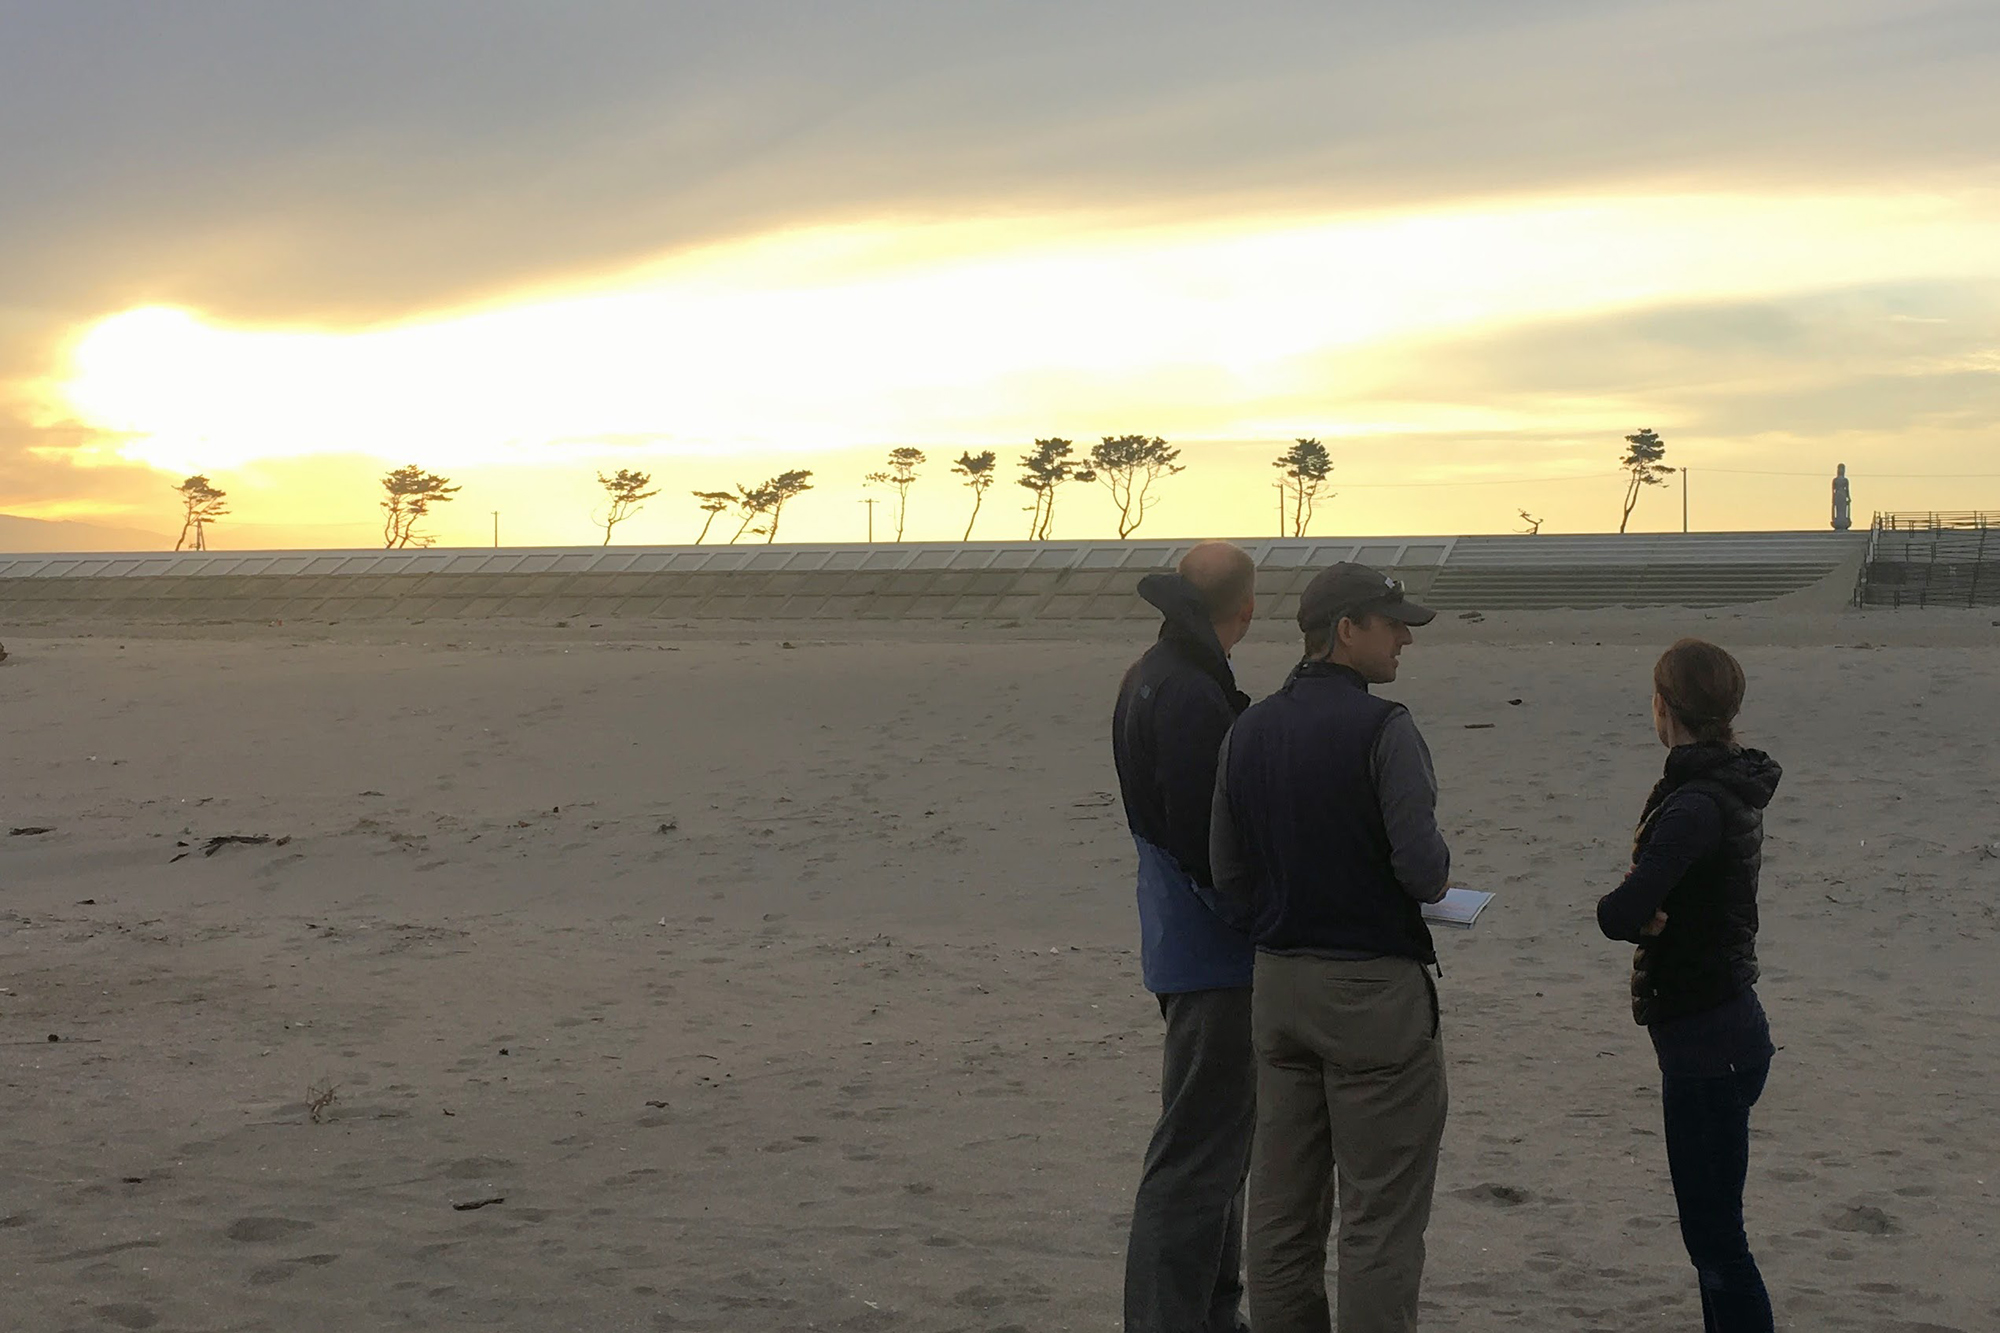 UConn professors on the beach near Sendai. Note the recently raised sea wall and trees with healthy branches indicating the height of the 2011 tsunami wave. (Photo courtesy of William Ouimet)